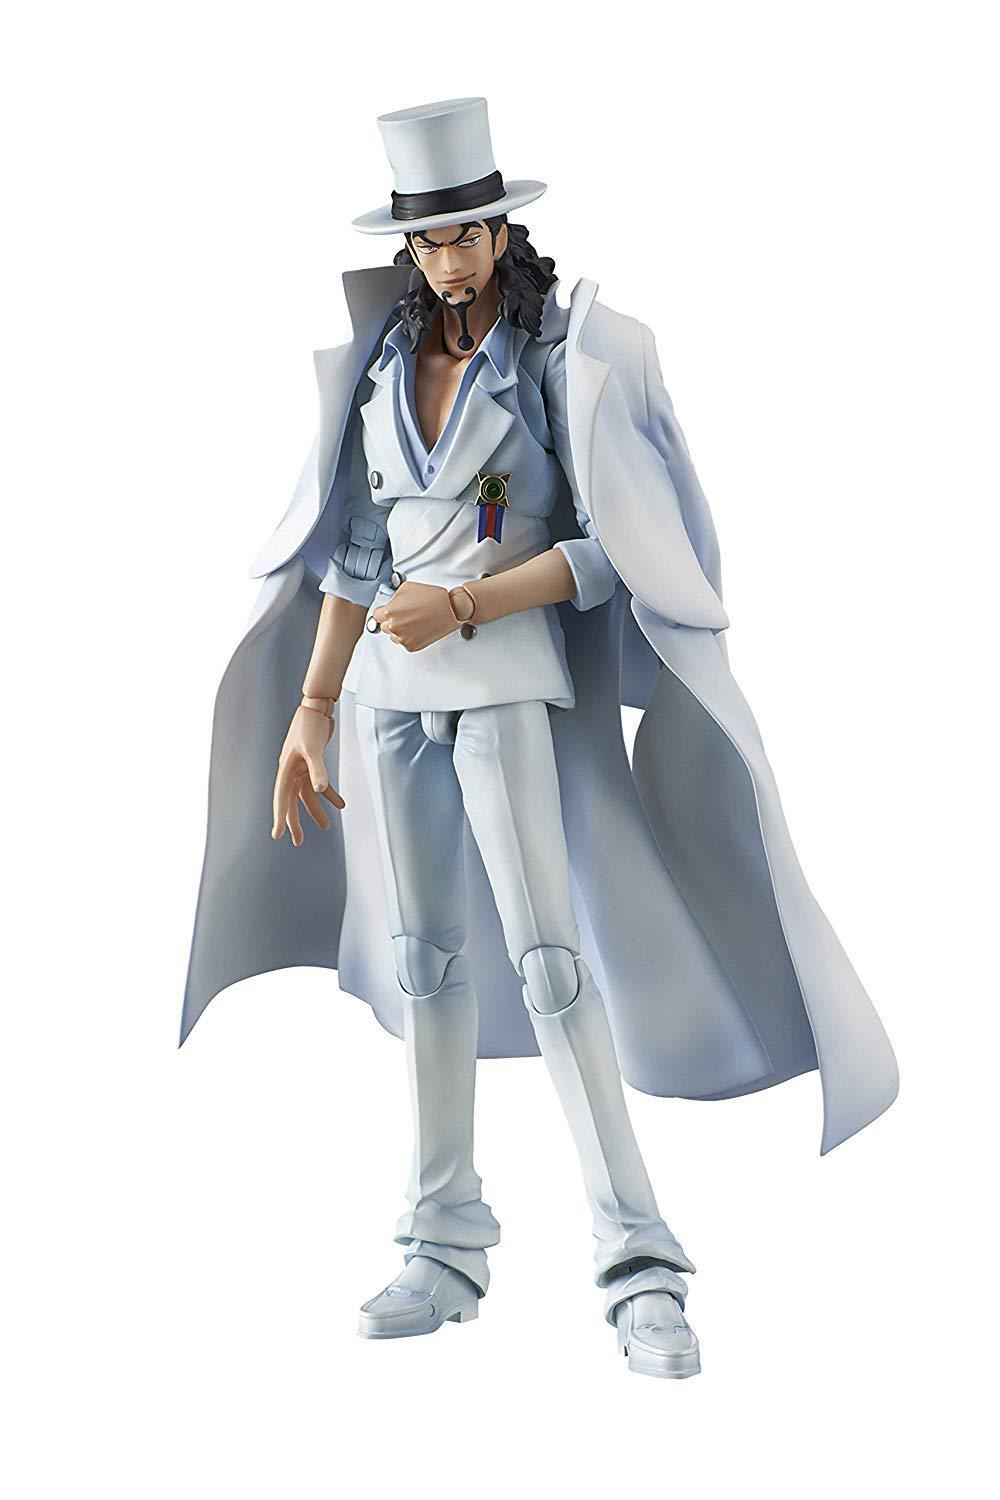 Megahouse Variable Action Heroes ONE PIECE Rob Lucci Ruch Action Figure